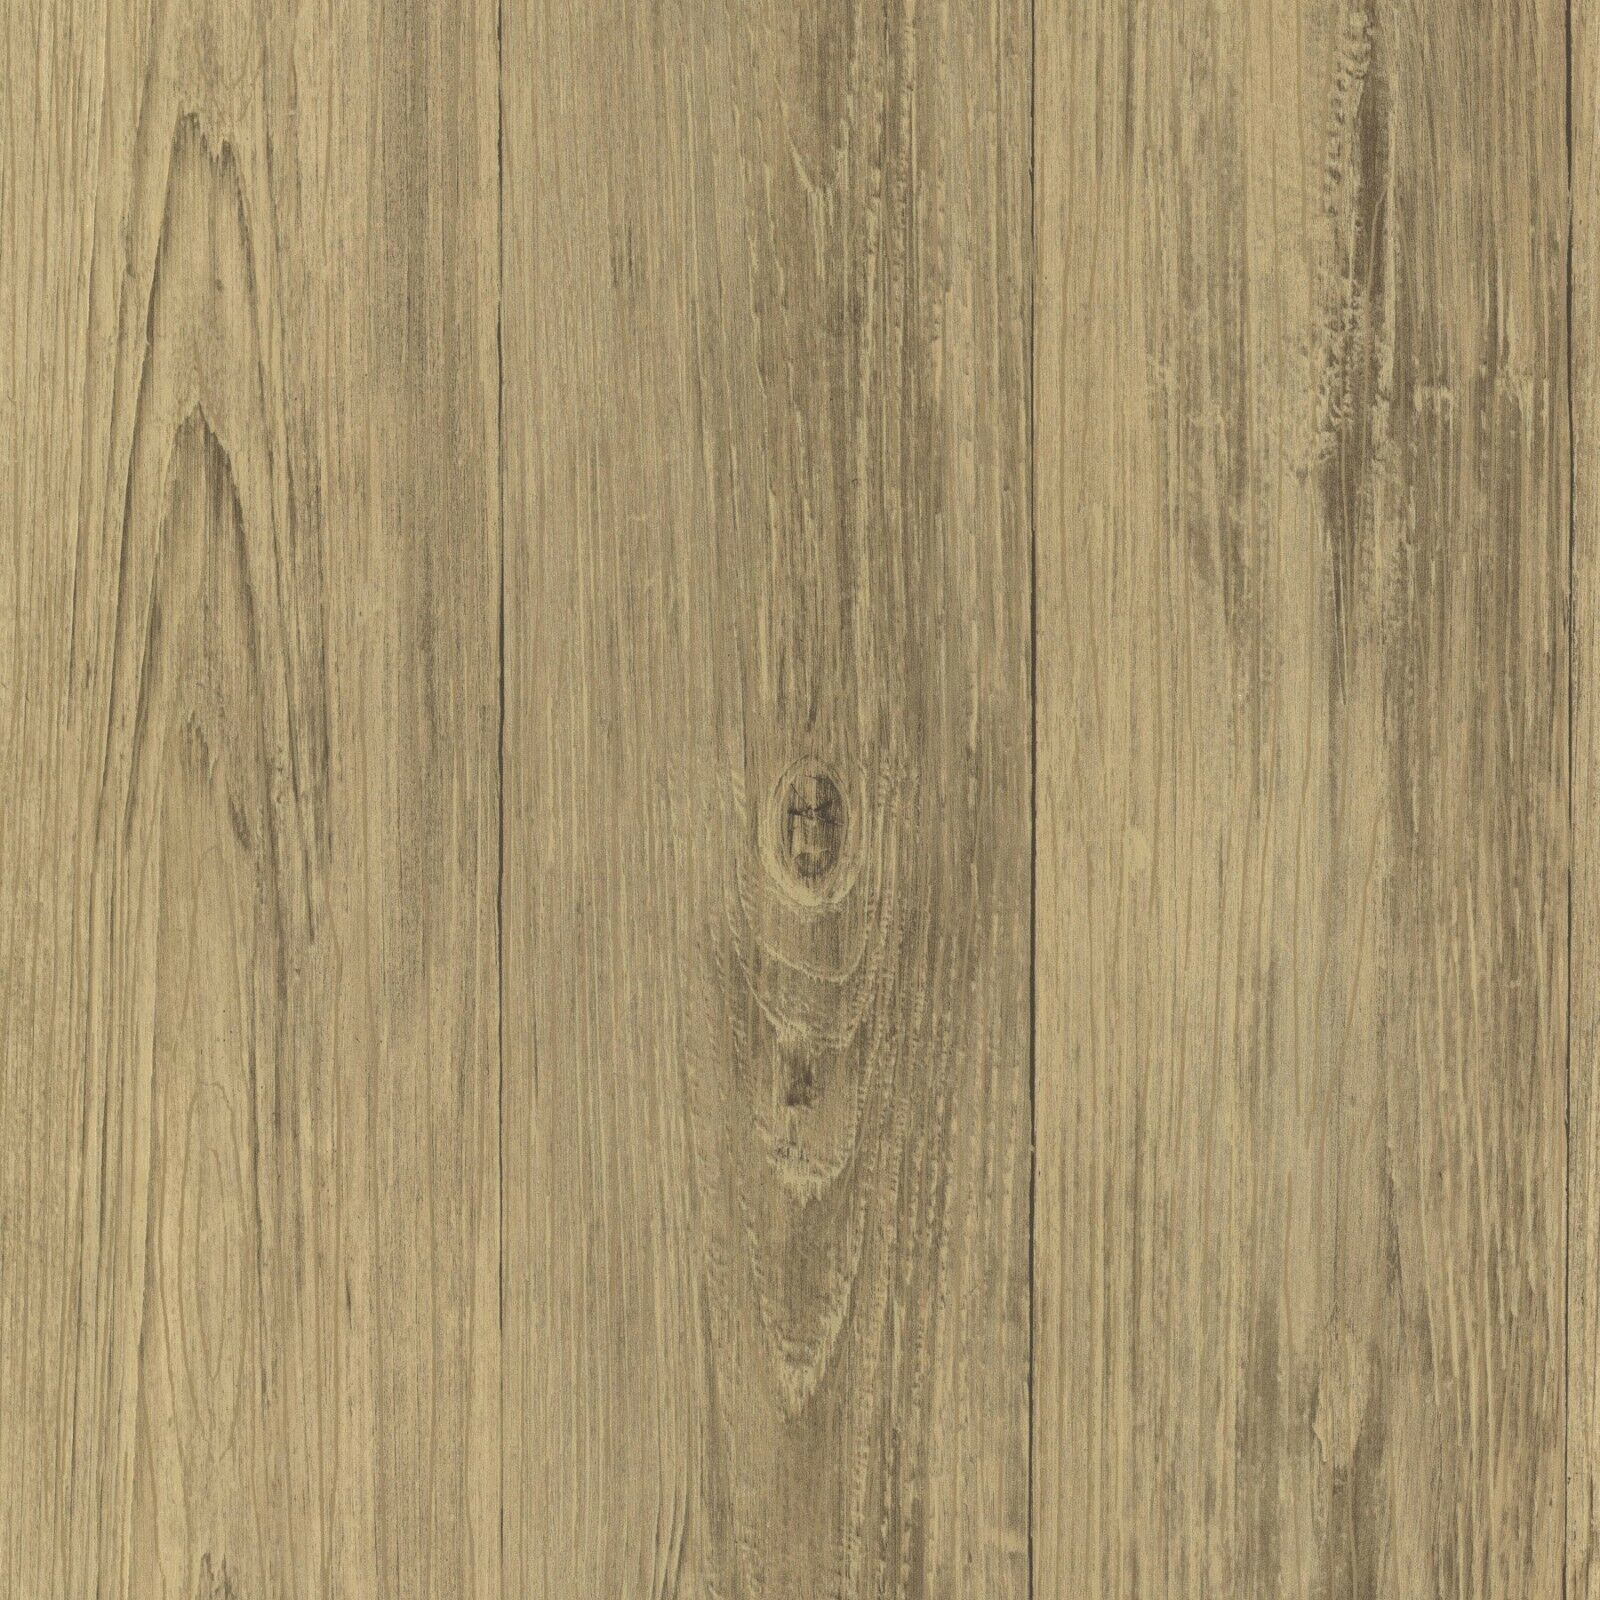 DOUBLE ROLL TLL01442 Brown Faux Wood Texture MAKE ME OFFER FOR LOWEST PRICE